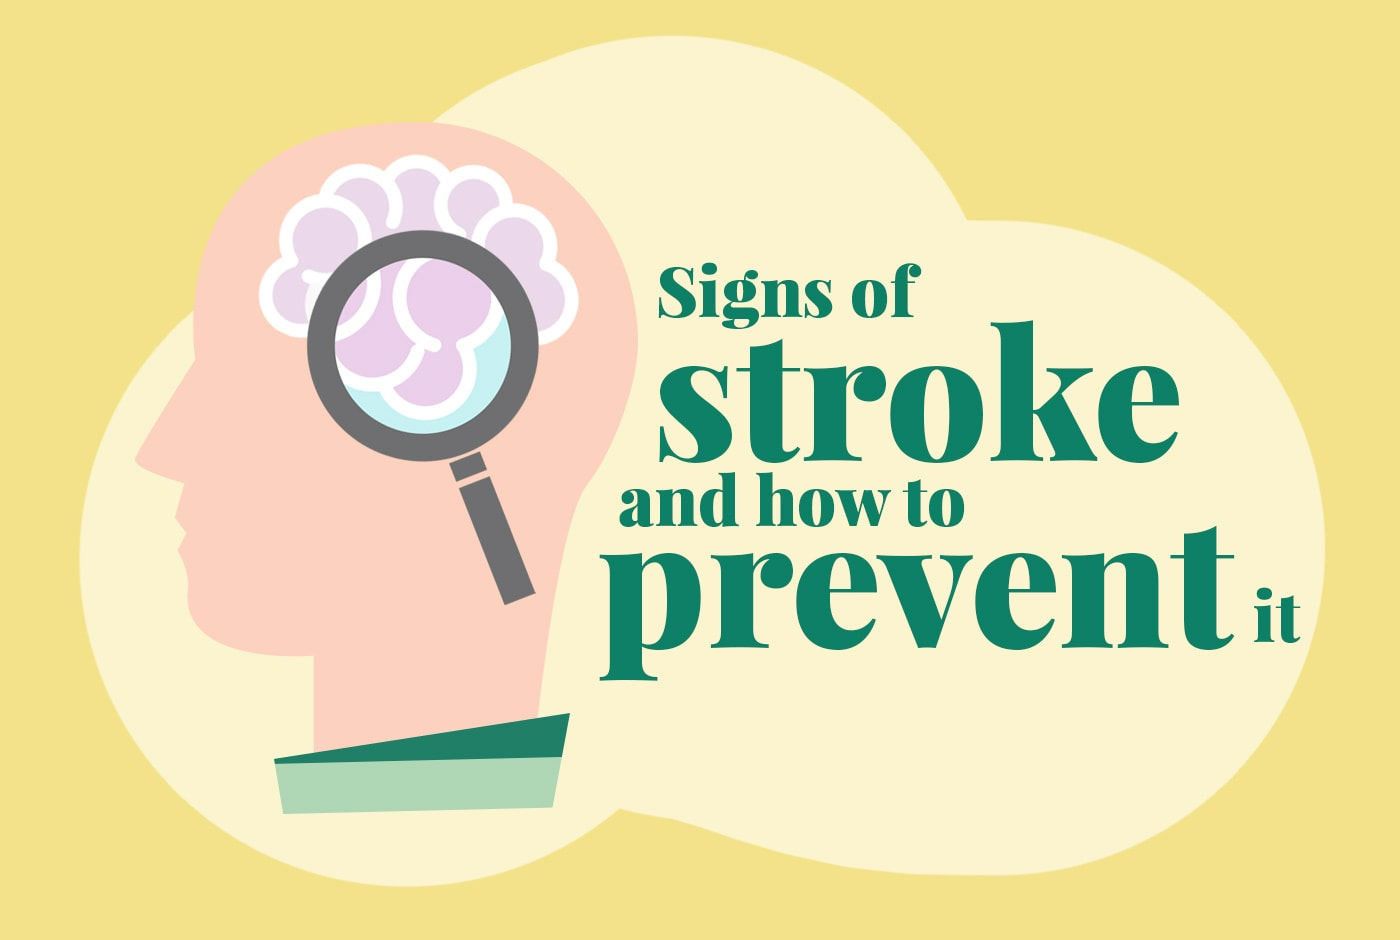 SIGNS OF STROKE AND HOW TO PREVENT IT